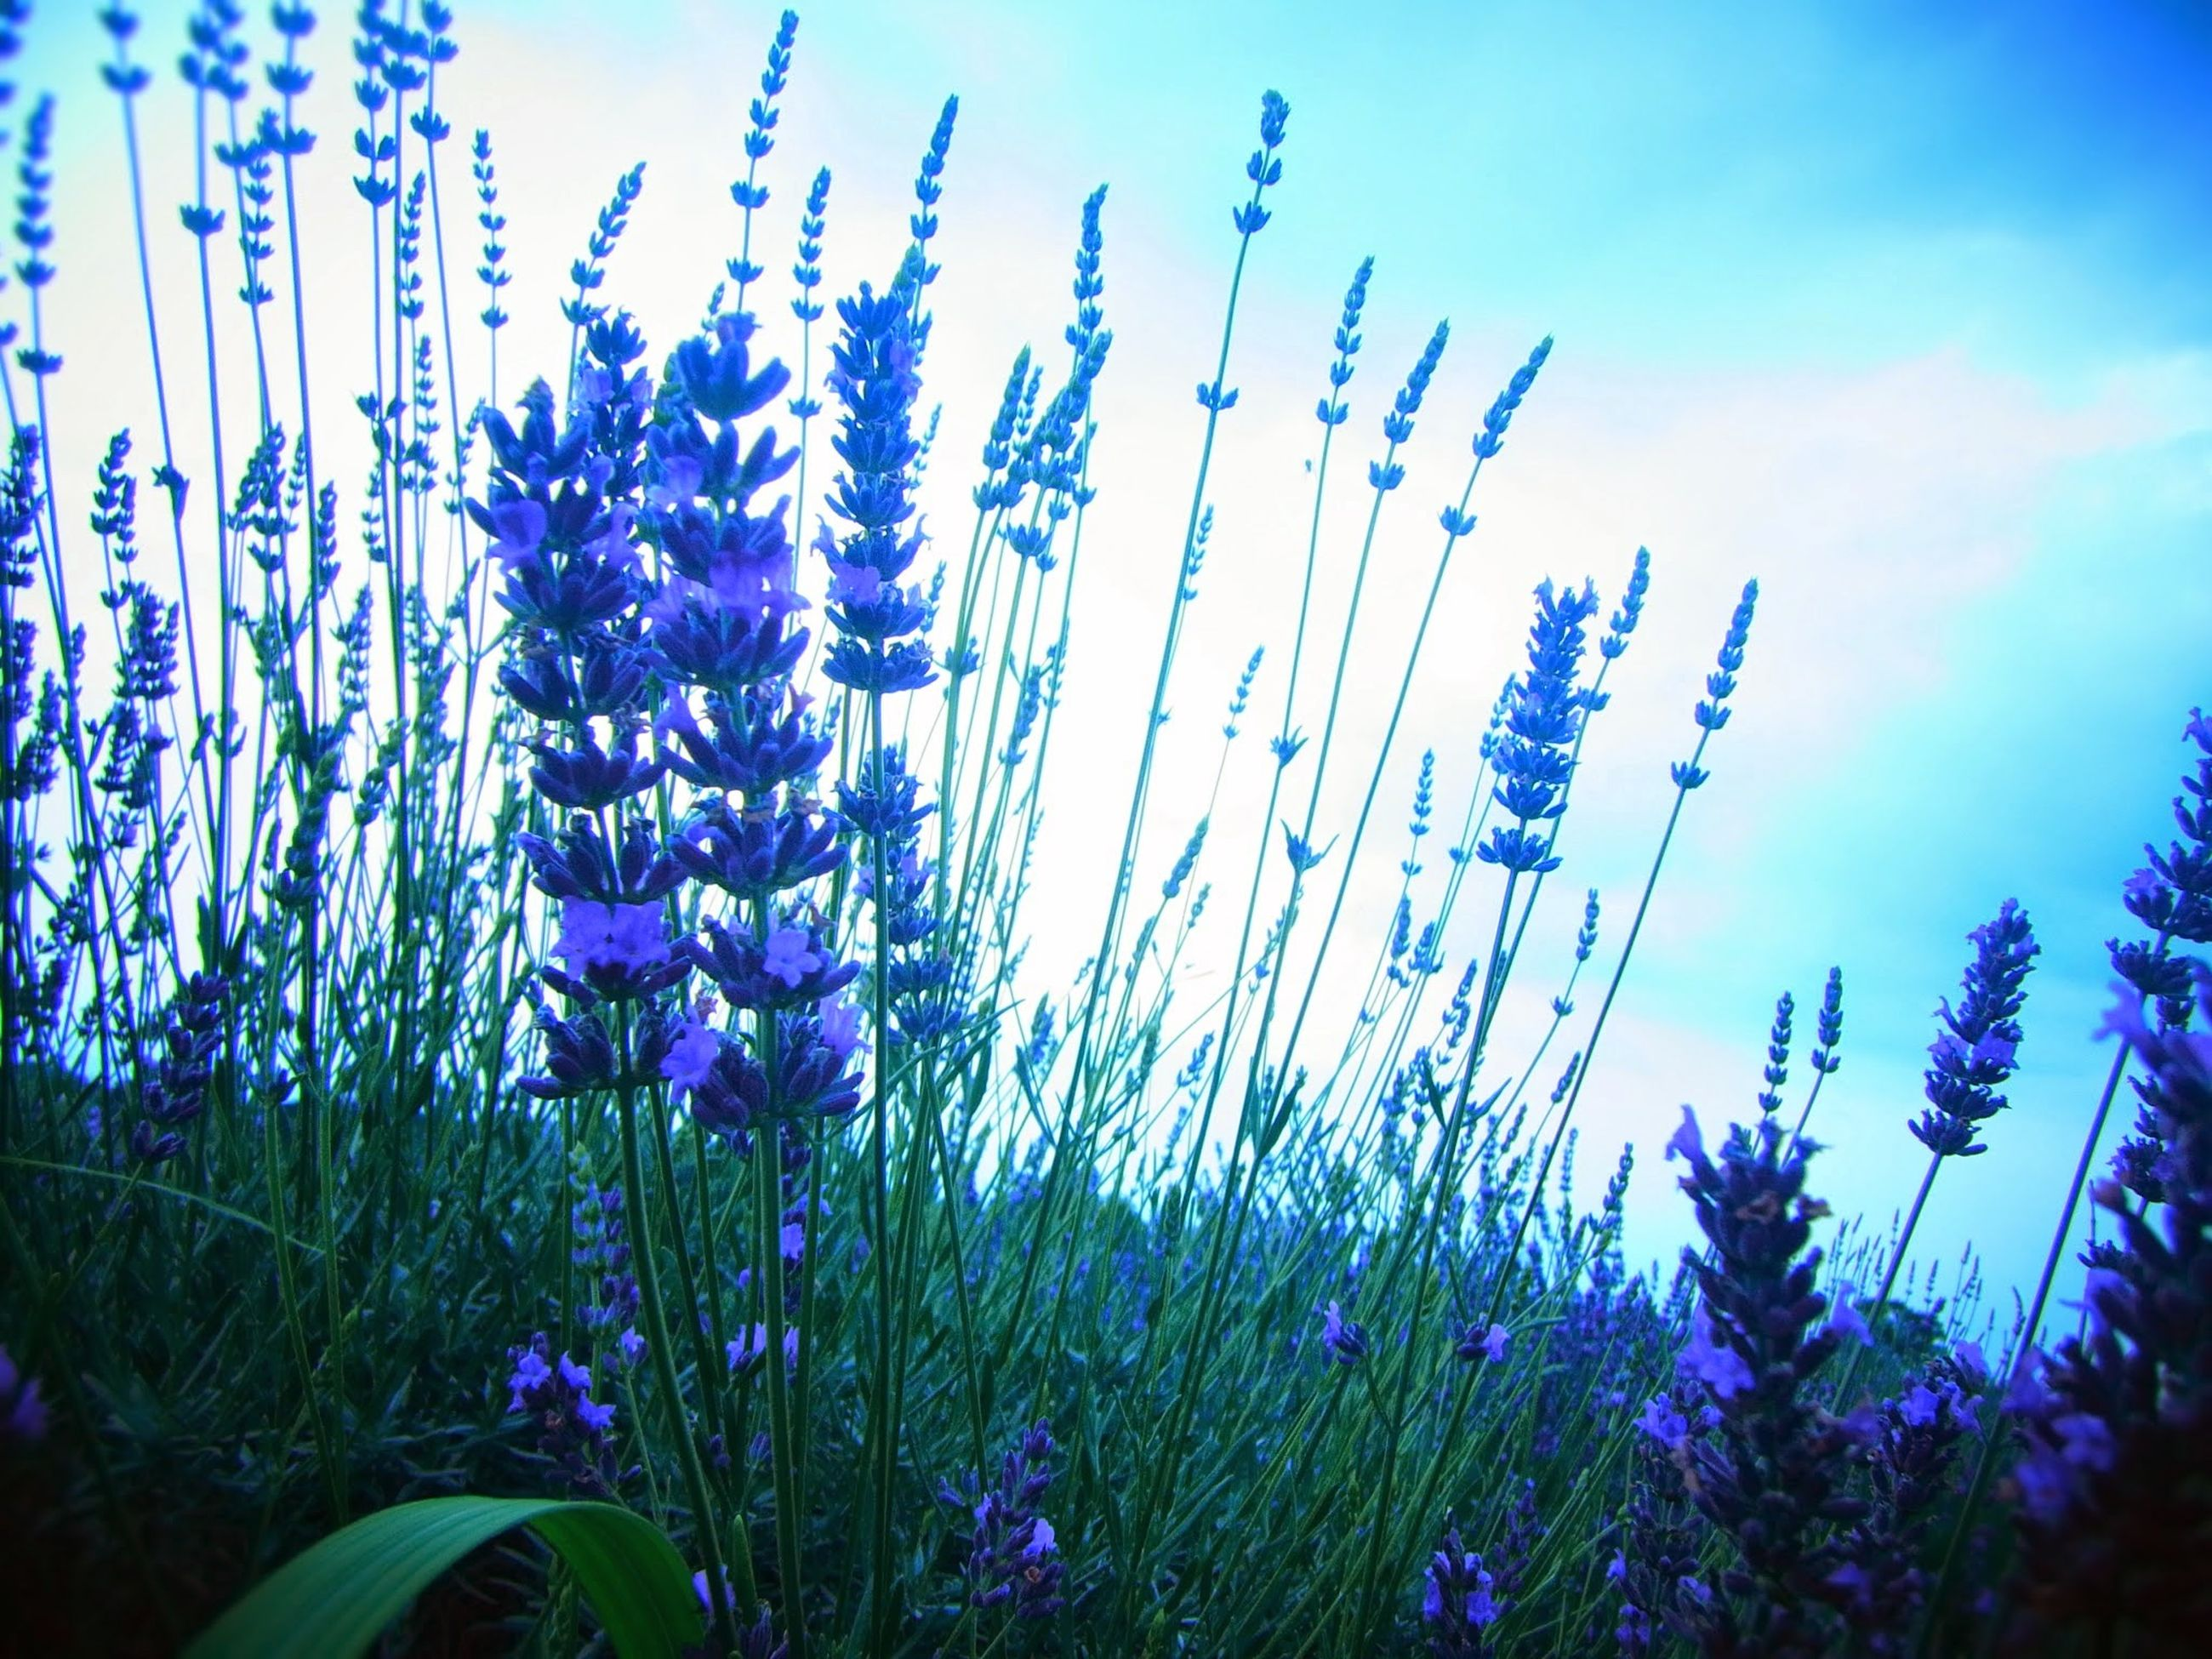 flower, growth, plant, freshness, purple, fragility, beauty in nature, field, nature, blue, blooming, sky, in bloom, petal, stem, flower head, outdoors, clear sky, no people, tranquility